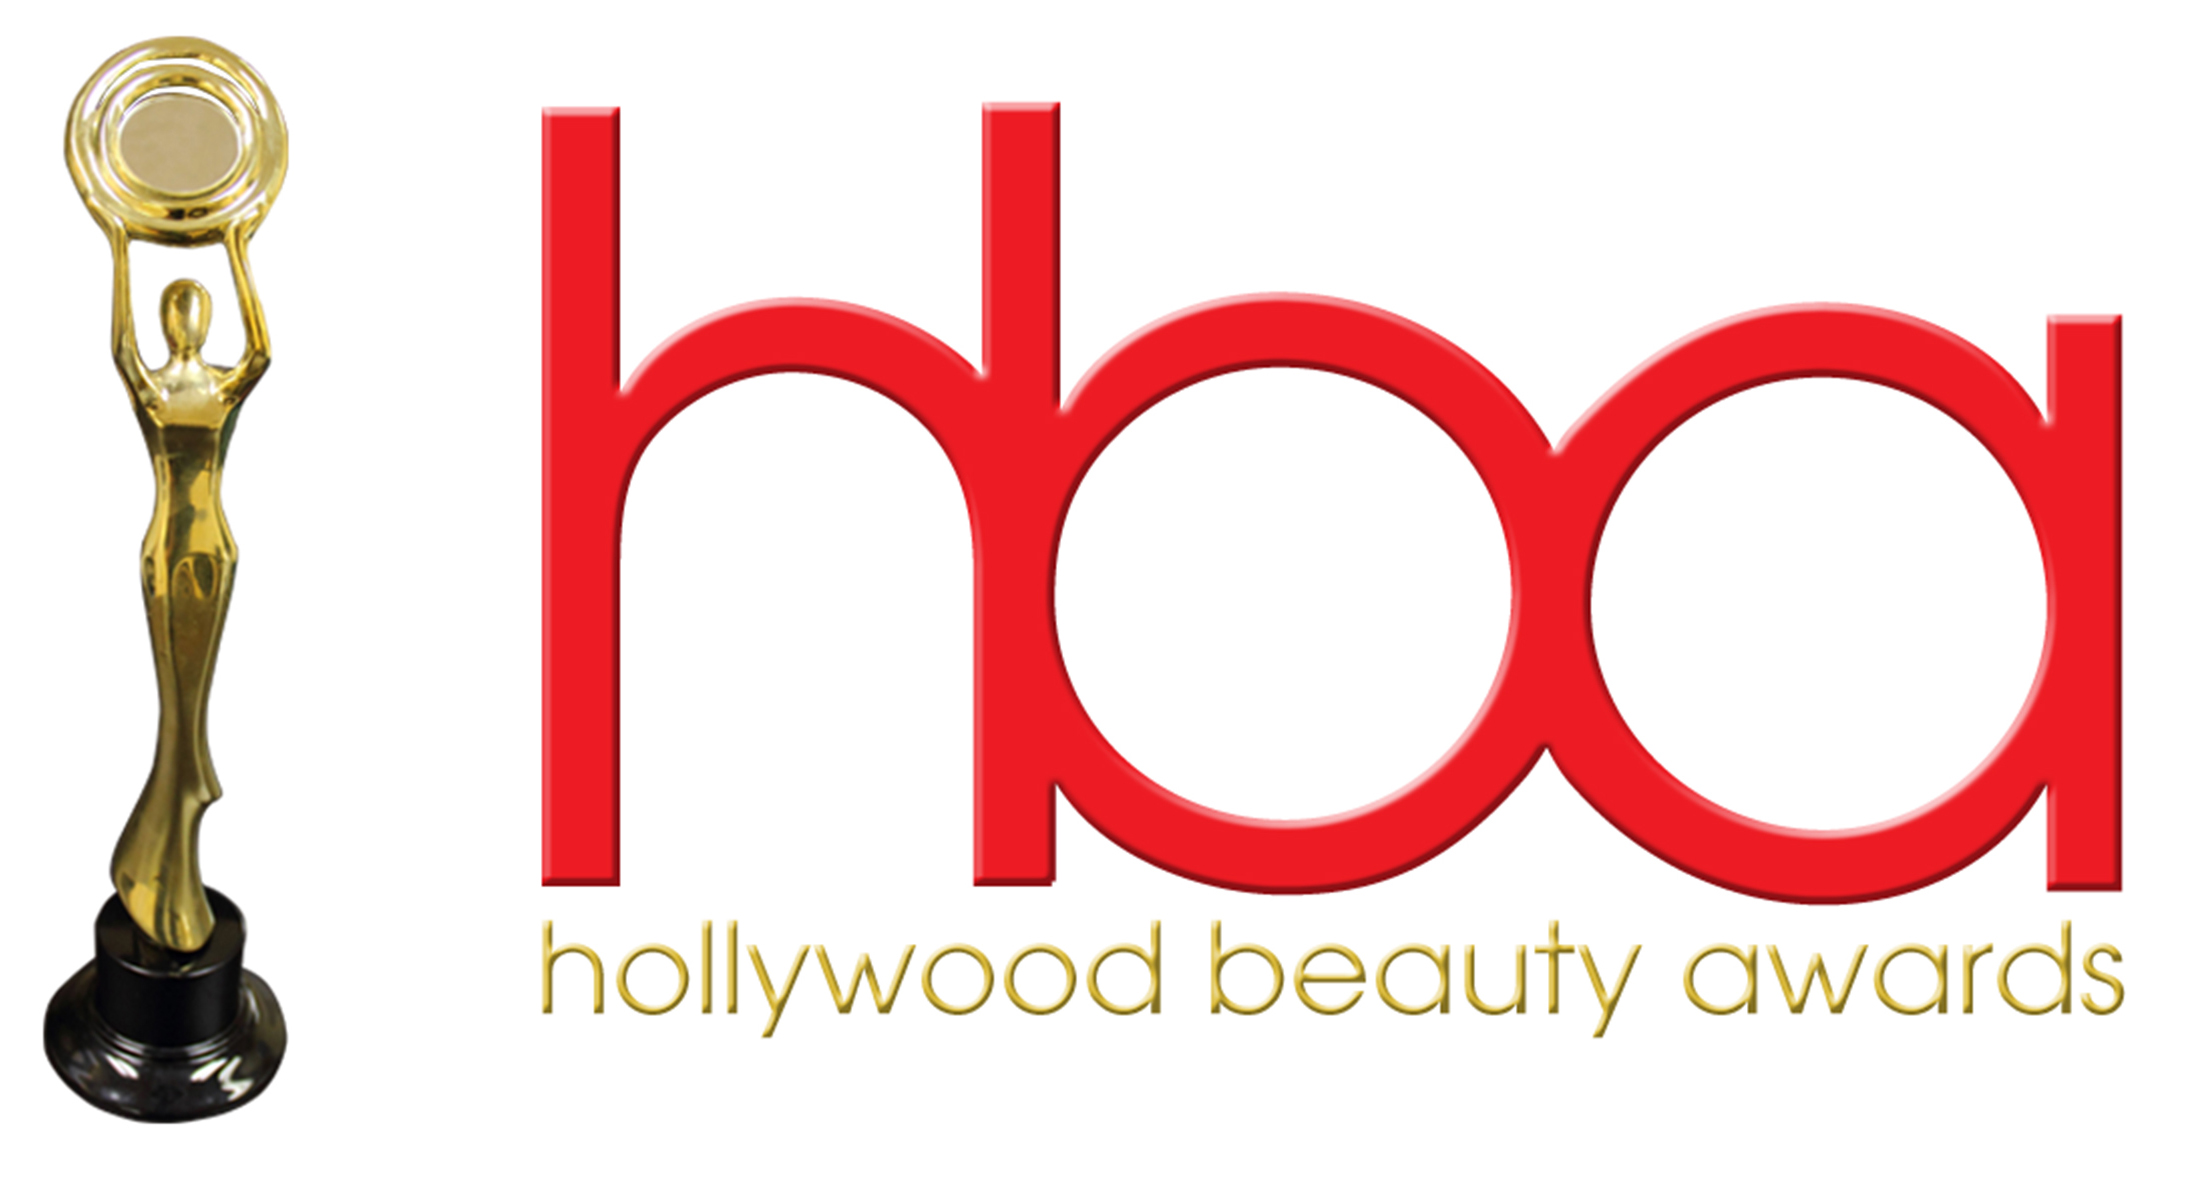 4th hollywood beauty awards winners